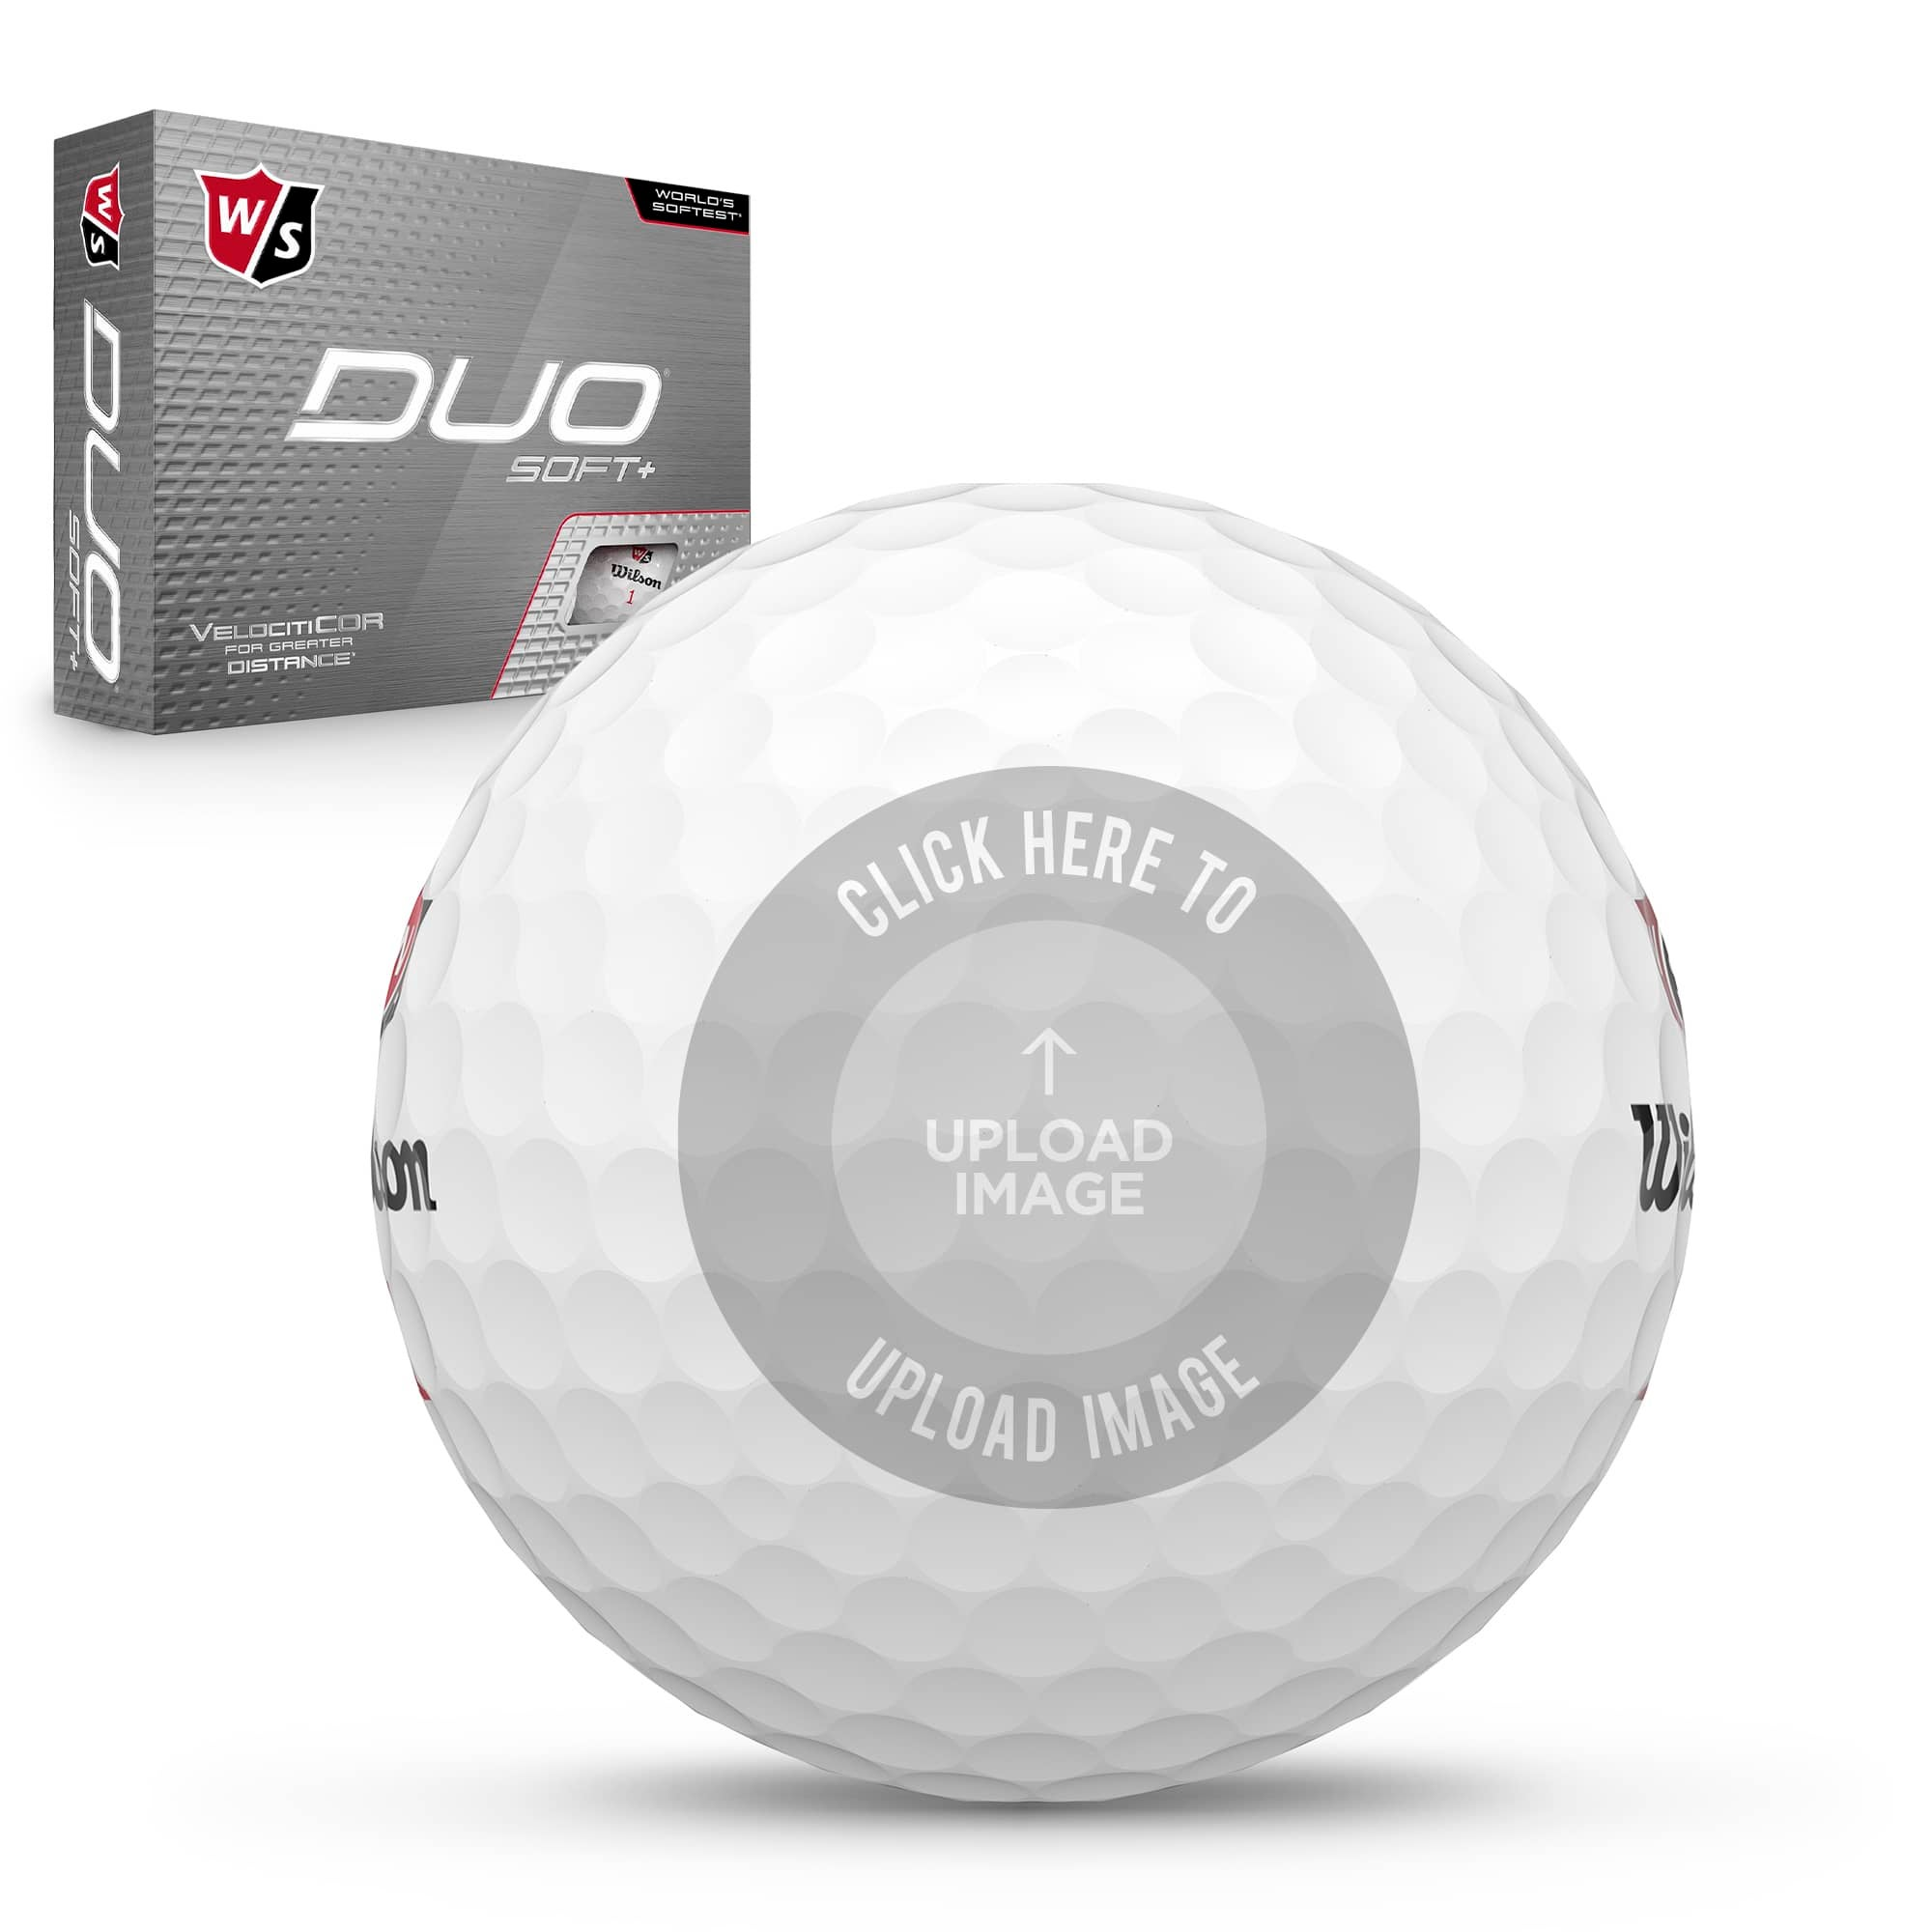 Wilson Staff Duo Soft Golf Balls with personalization